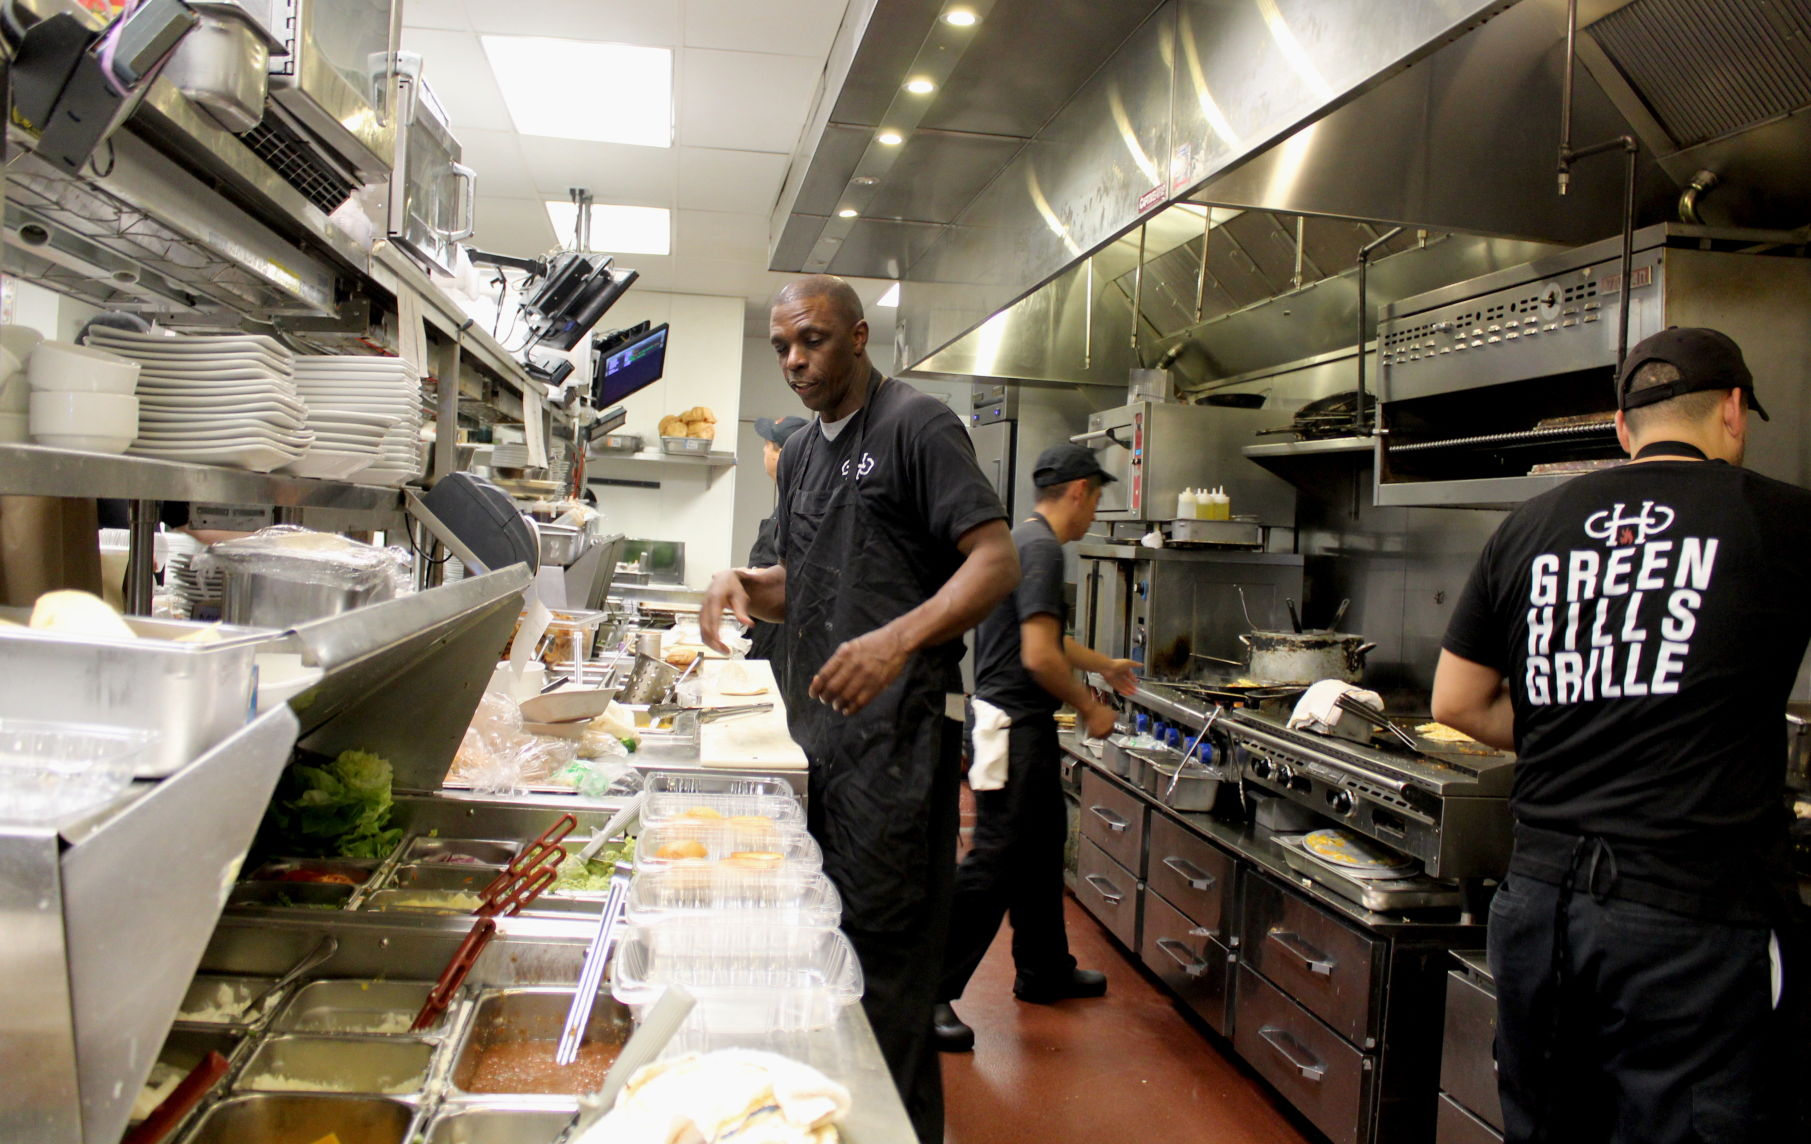 <p>Line cooks prepare meals for the dinner crowd at Green Hills Grille. Photo by Rover/Dylan Skye Aycock</p>